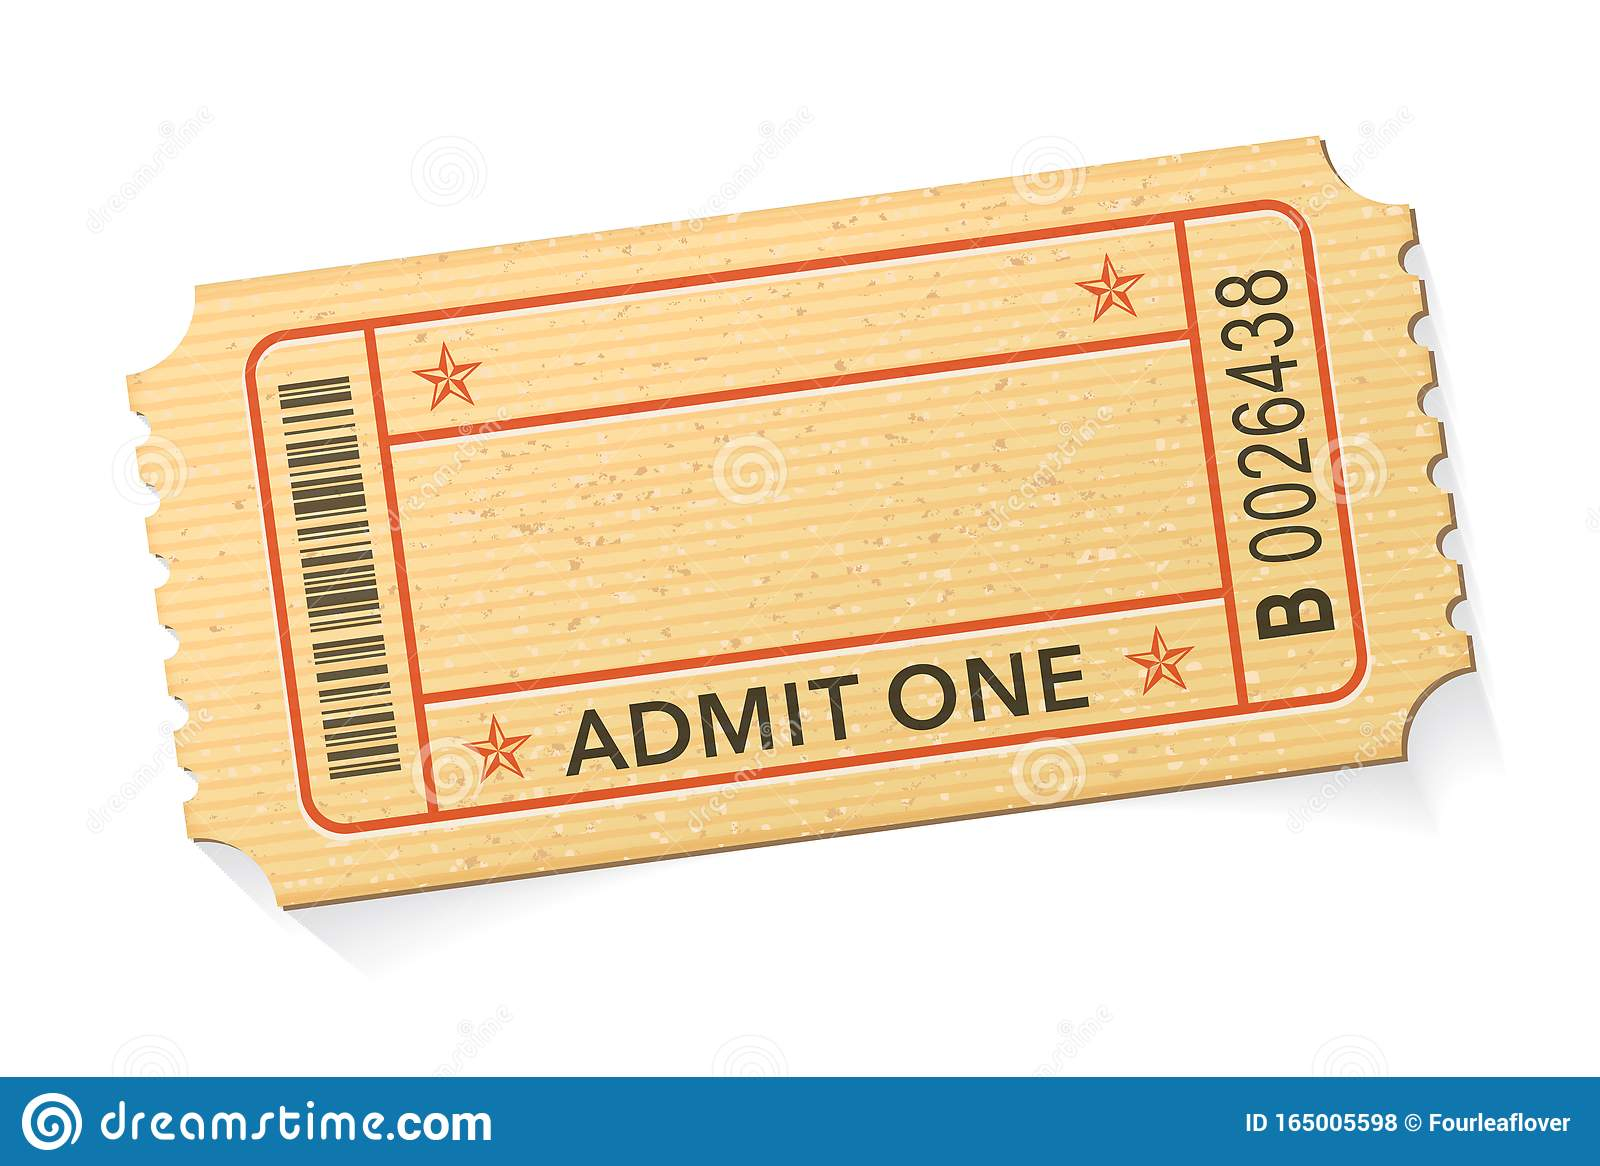 Admit One Event Ticket Template Stock Vector Illustration Of Elegant Blank 165005598